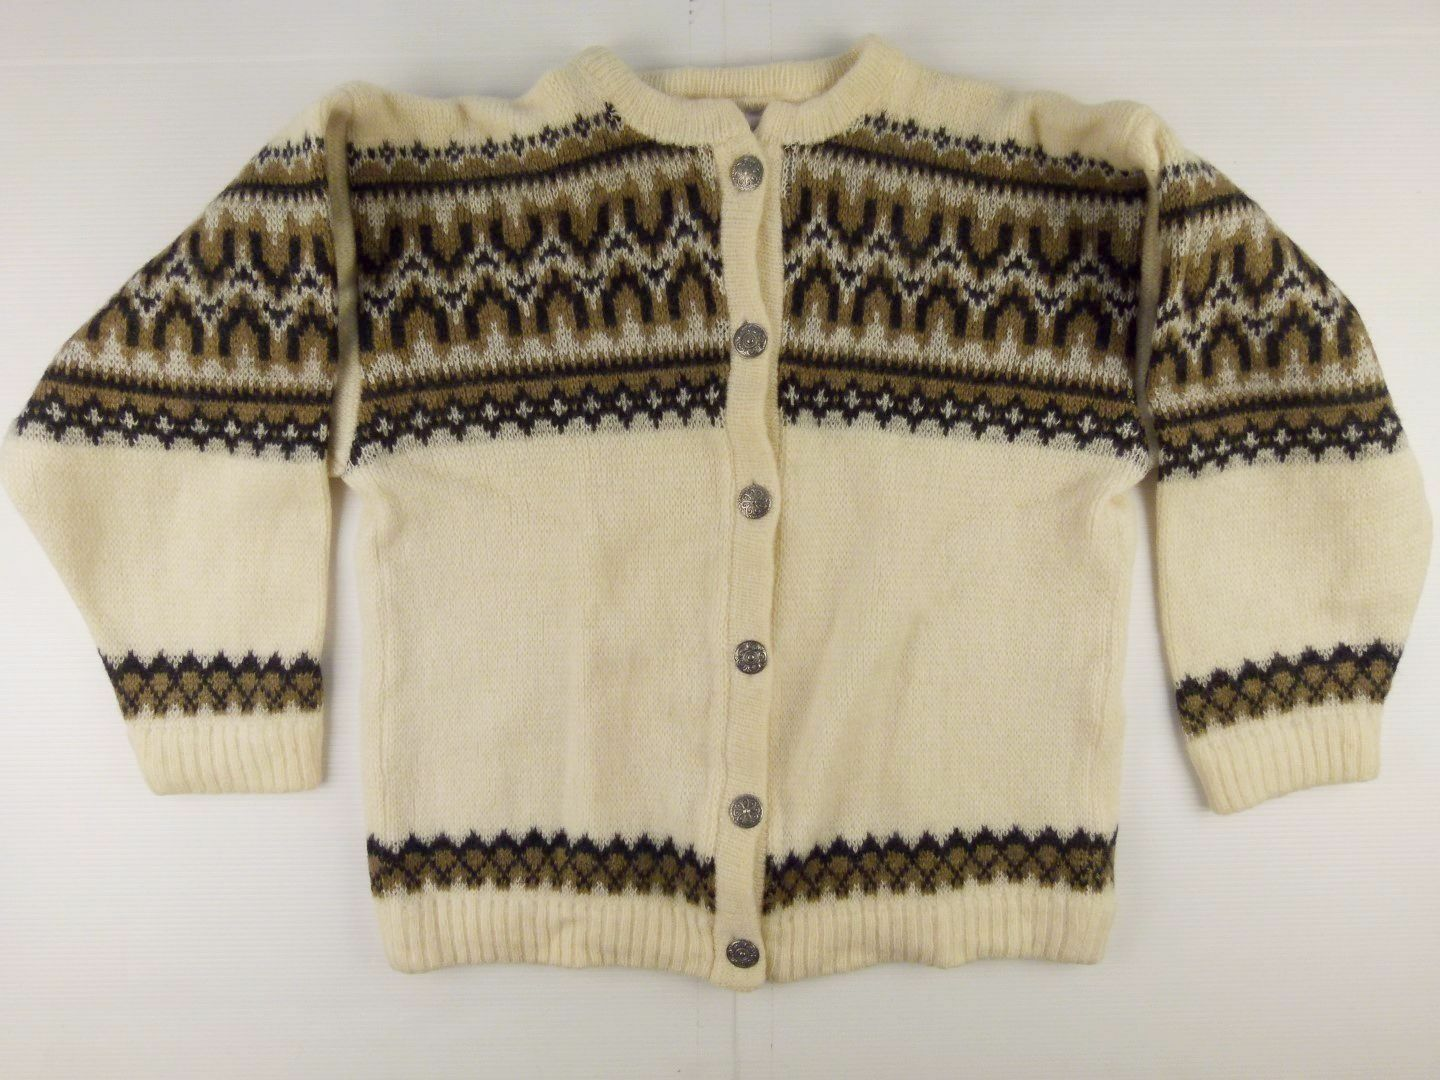 J240 Warmth of NORWAY vintage folk heavy wool cardigan sweater size M excellent